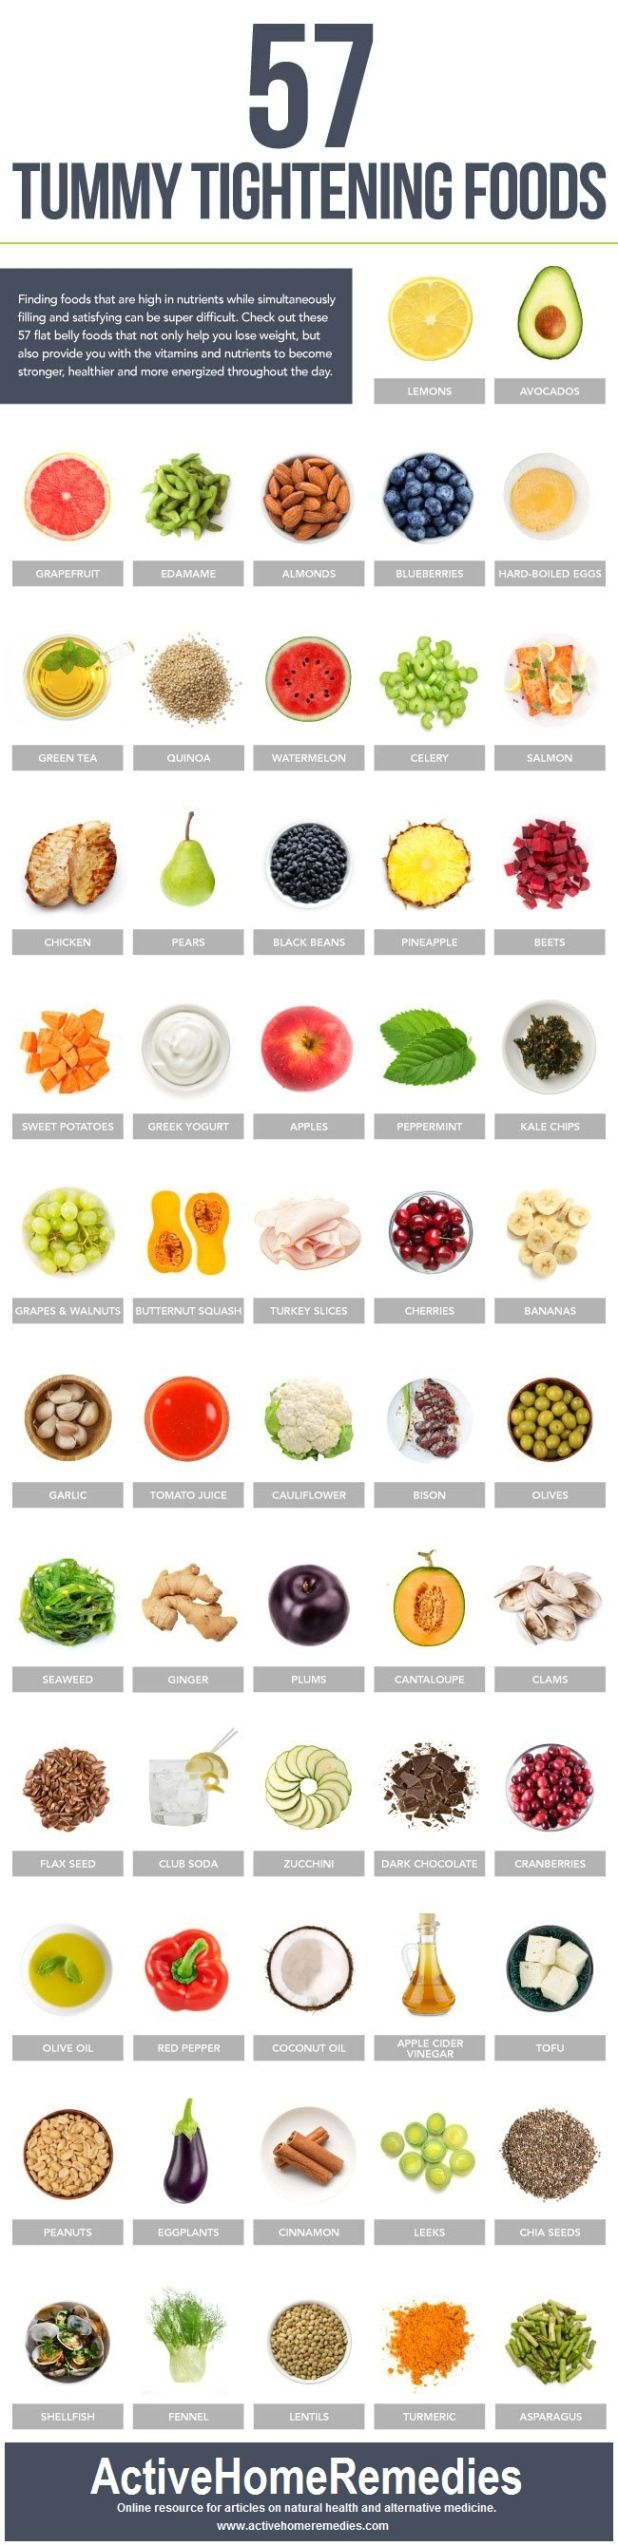 57 Tummy Tightening Foods - Sometimes, you cannot recognize the proper diet that is highly nutritious but you need to pursuit for it. Here we have chosen the 57 right foods that will help you all along the way for losing your weight and provide vitamins and minerals to your body to help you getting stronger and healthier mom or woman.